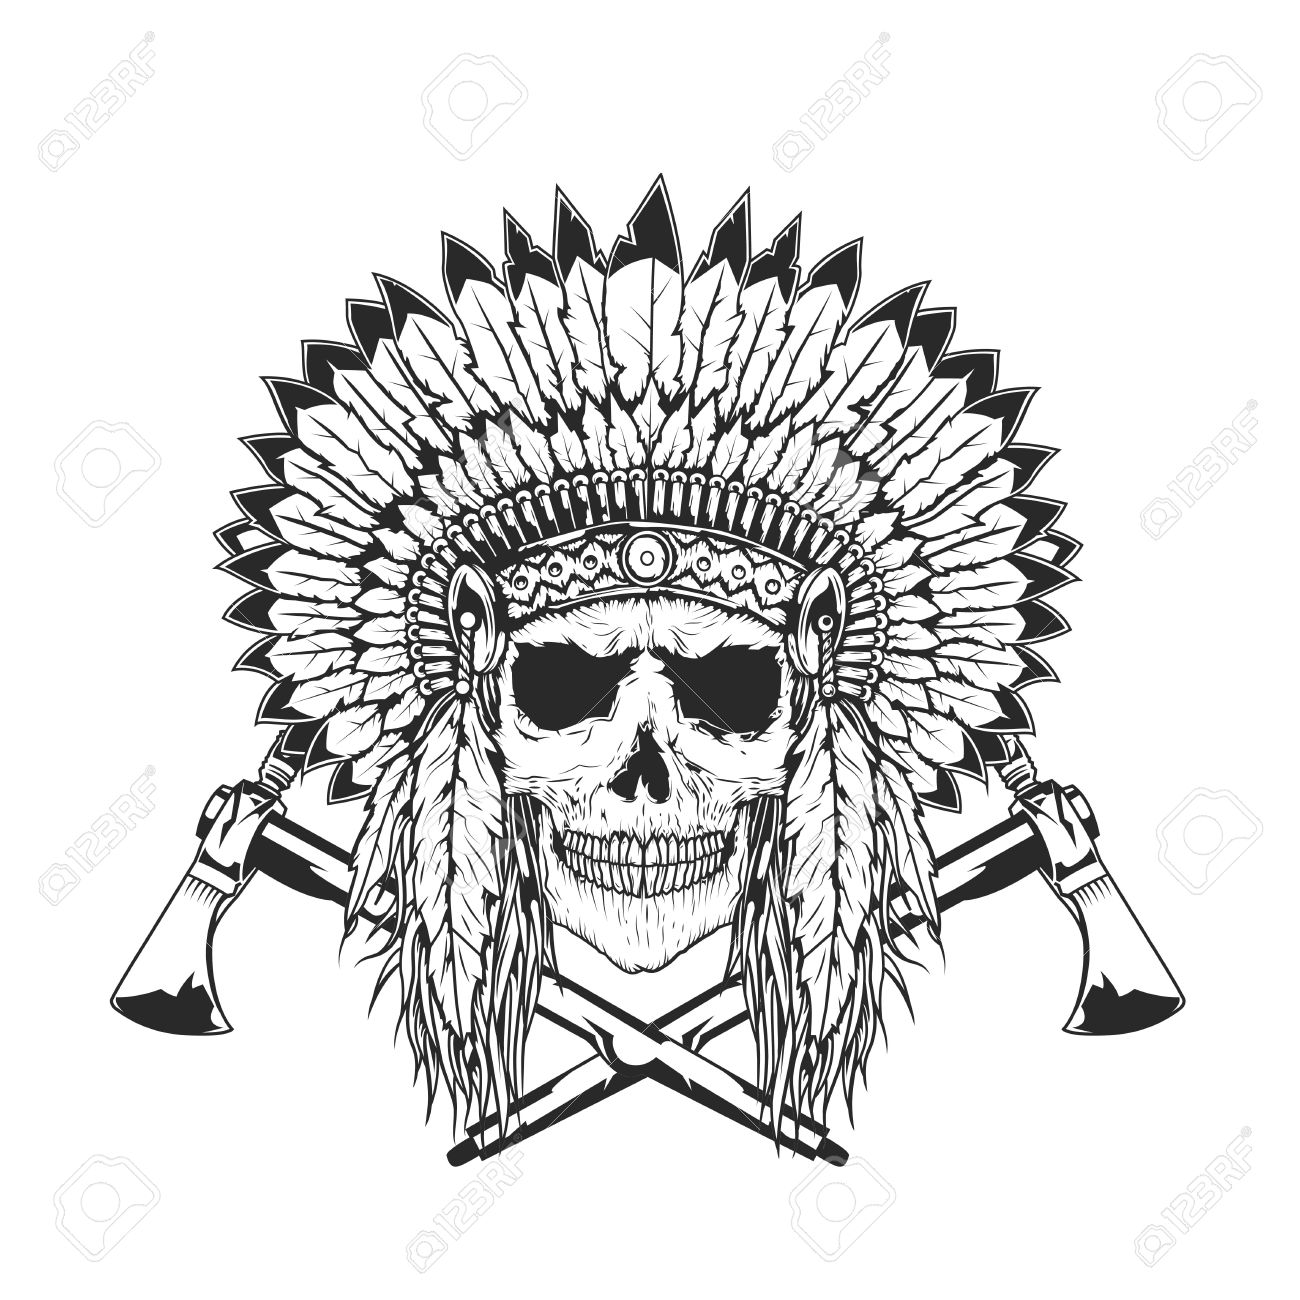 1300x1300 American Indian Chief Skull With Tomahawk. Isolated Hand Drawn